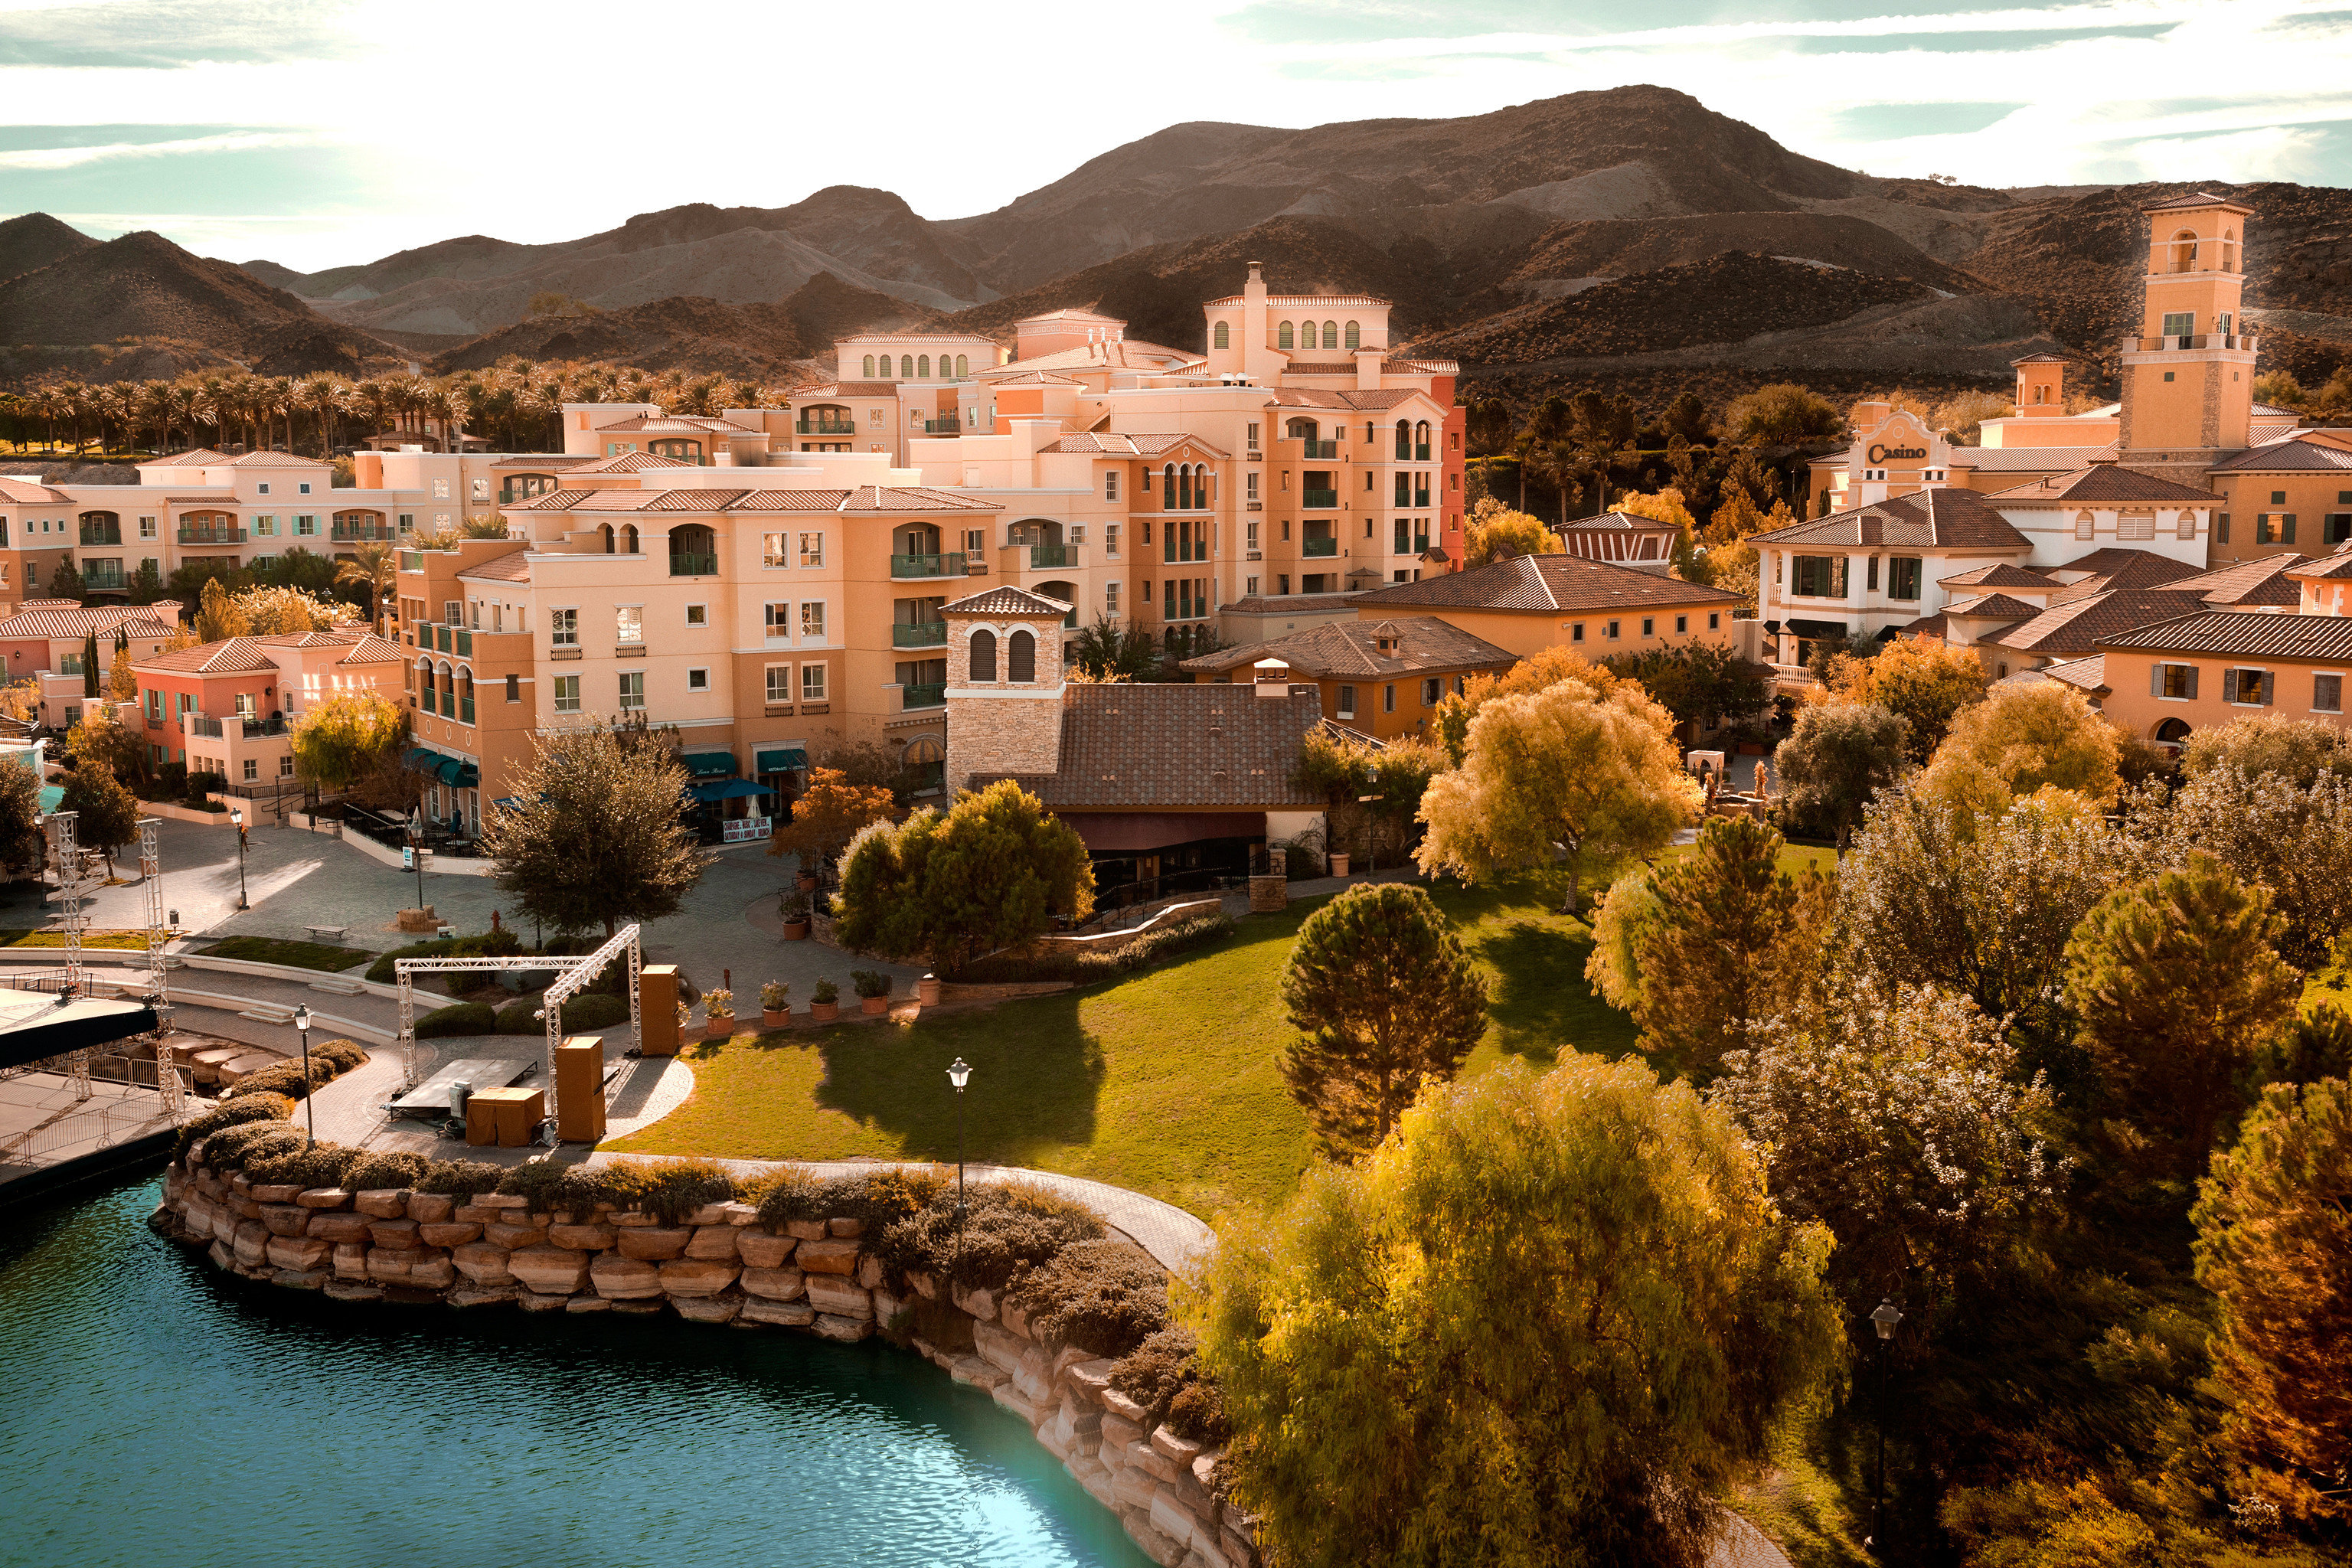 Exterior Family Travel Grounds Mountains Natural wonders Resort Trip Ideas sky water mountain Town landmark cityscape Village landscape ancient history aerial photography Harbor flower